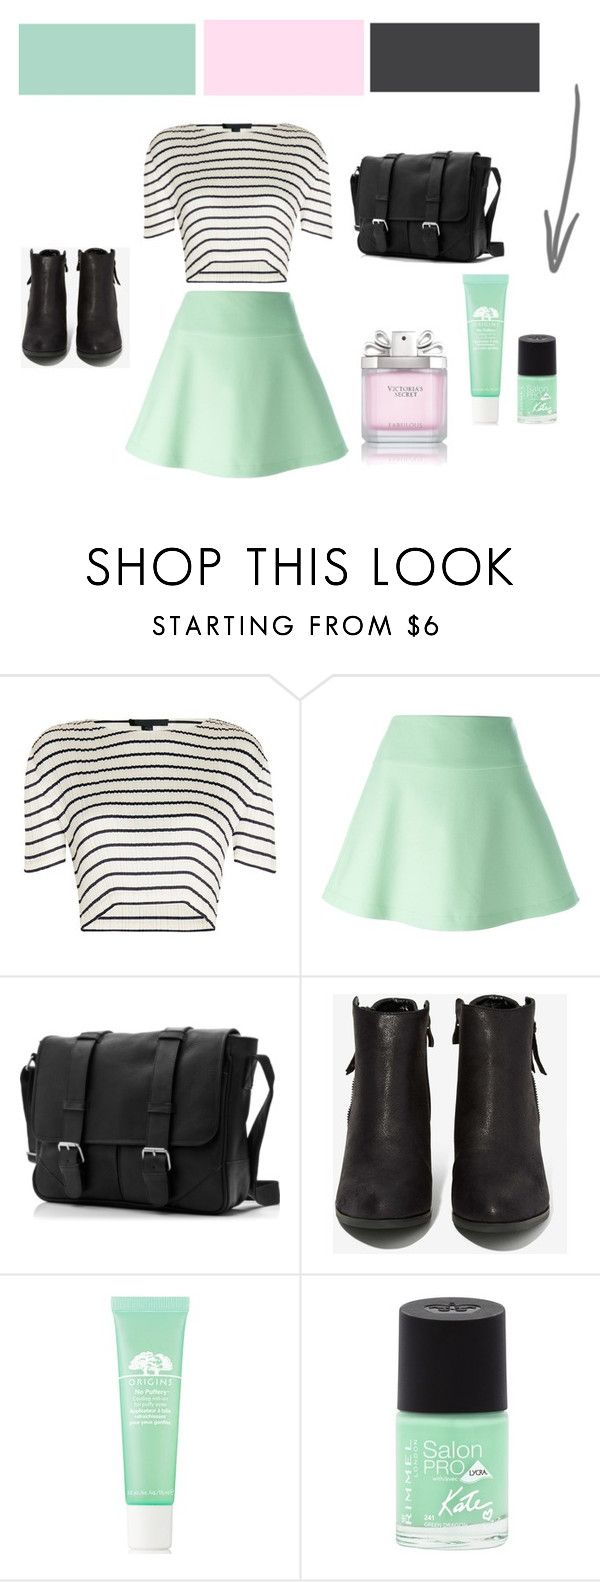 """Весенний лук"" by vetahay ❤ liked on Polyvore featuring Alexander Wang, RED Valentino, N.Y.L.A., Origins, Rimmel and Victoria's Secret"